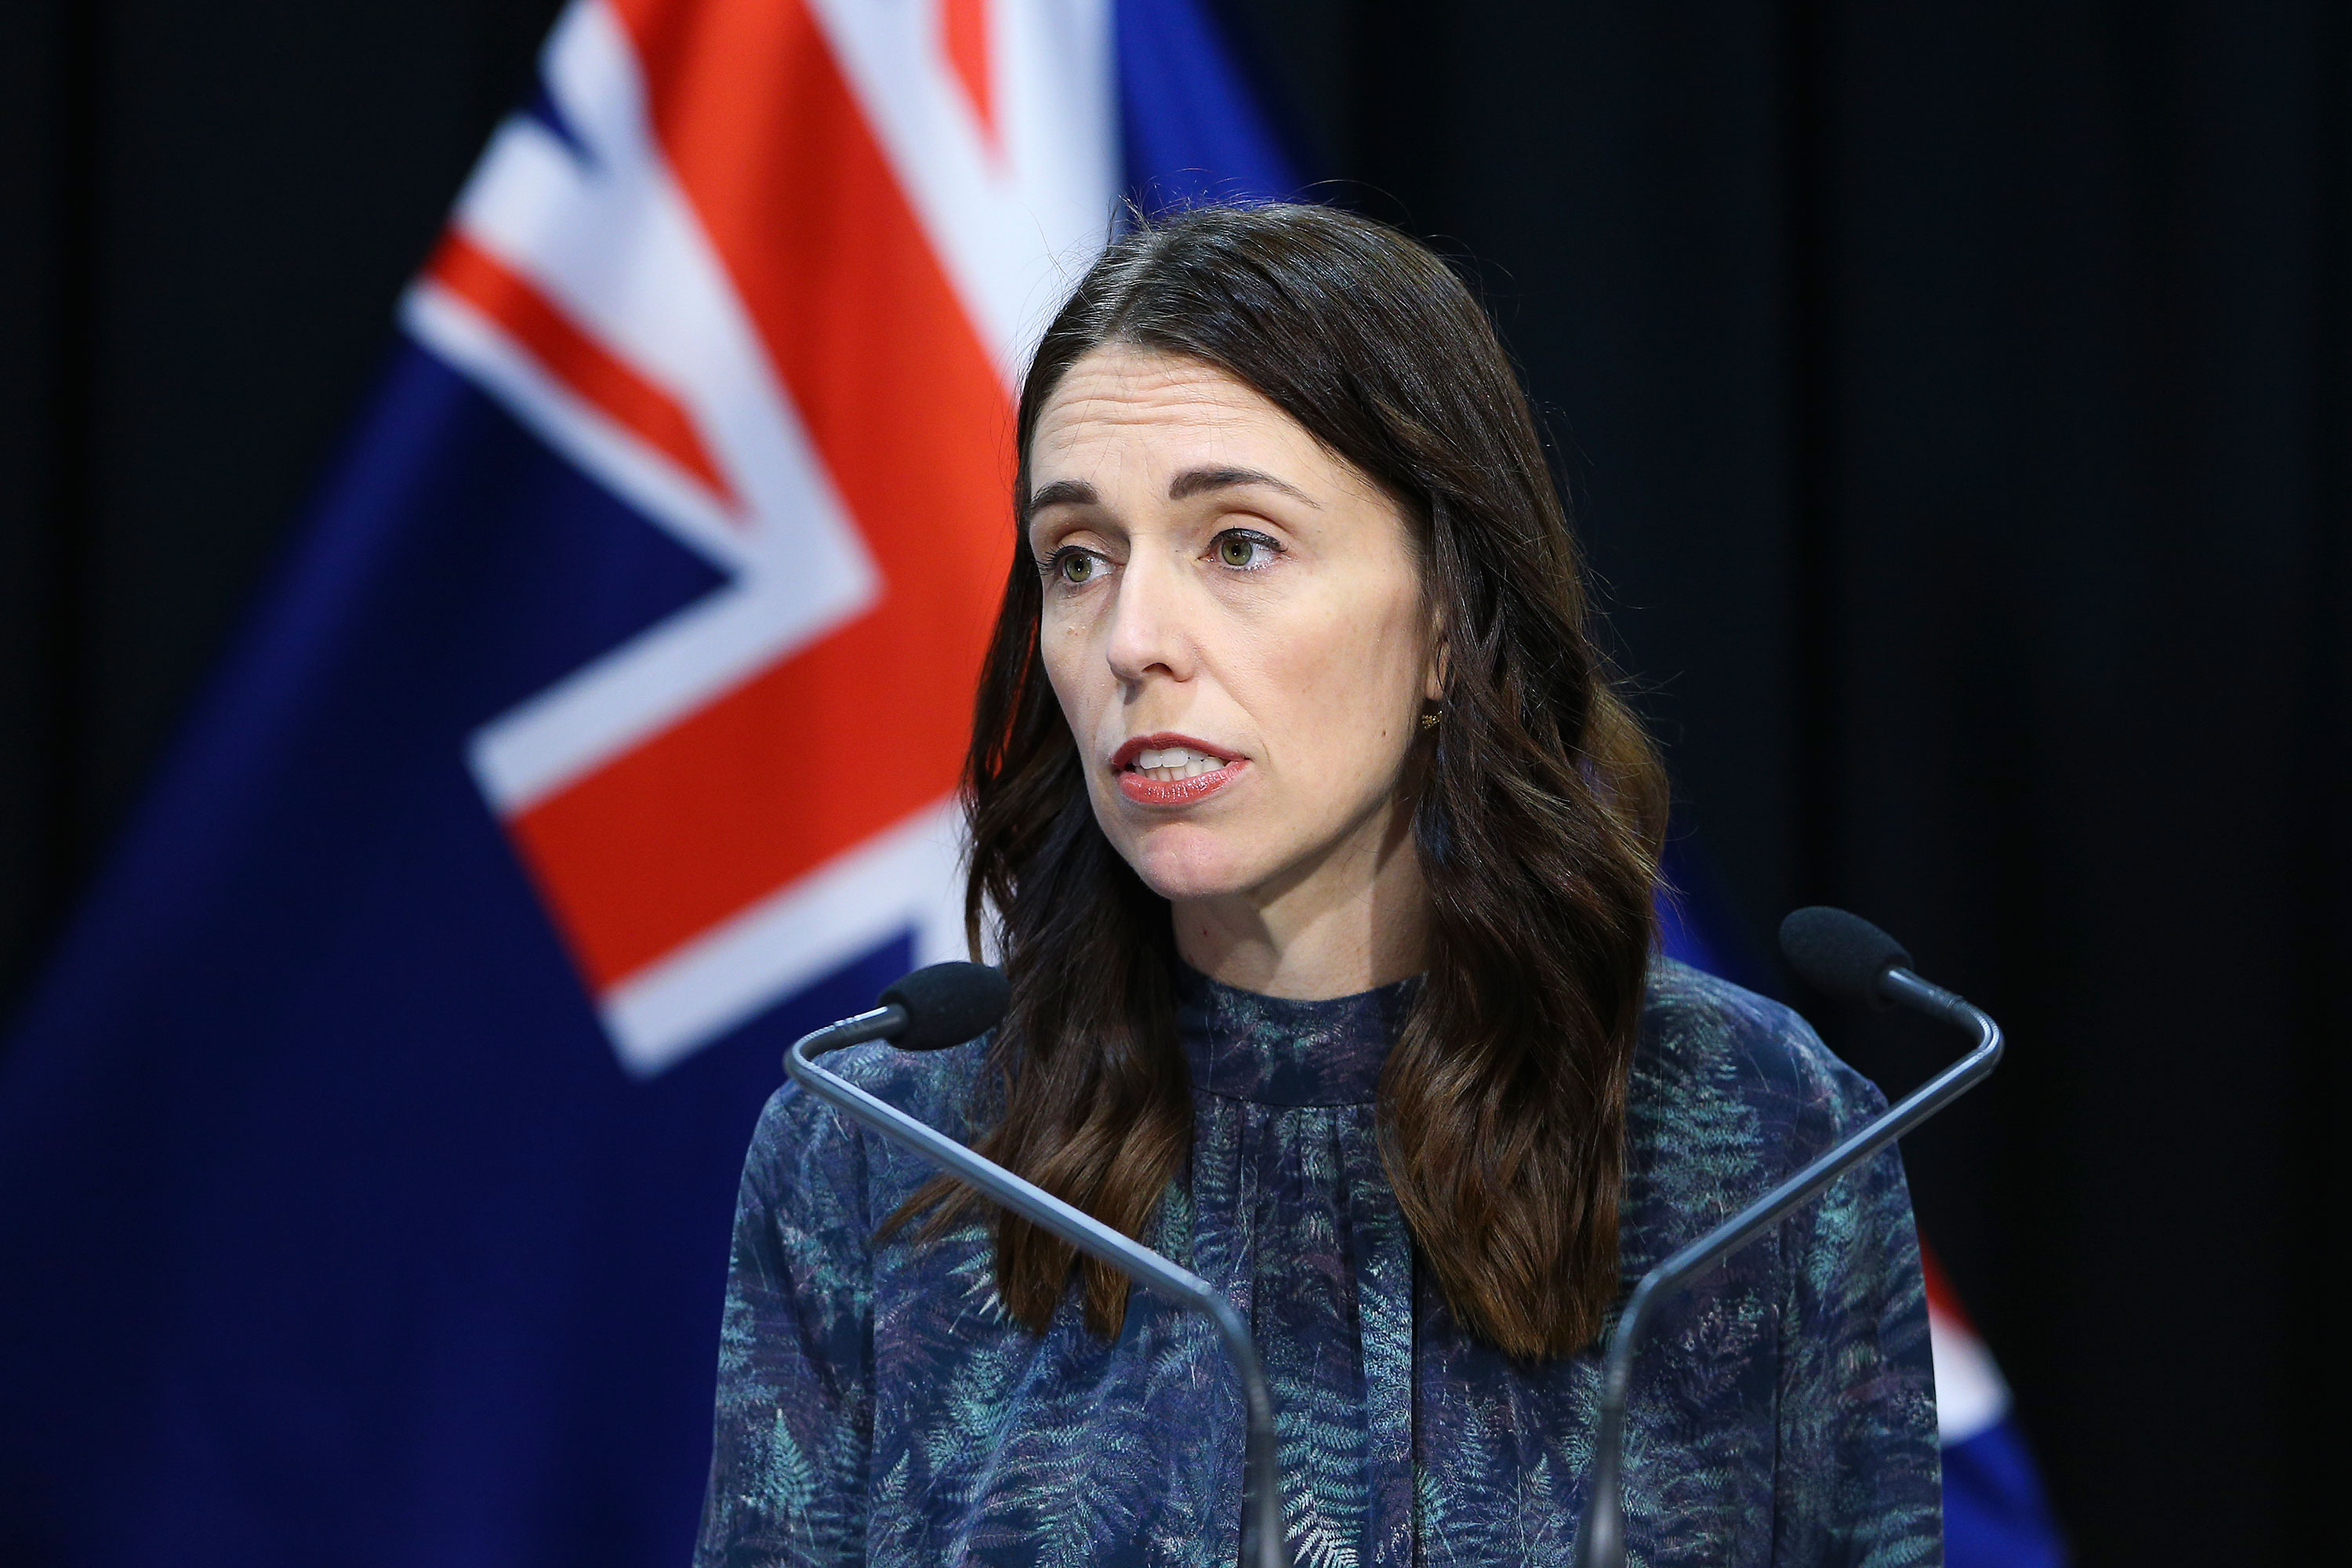 New Zealand Prime Minister Jacinda Ardern speaks at a news conference on April 19, in Wellington, New Zealand.